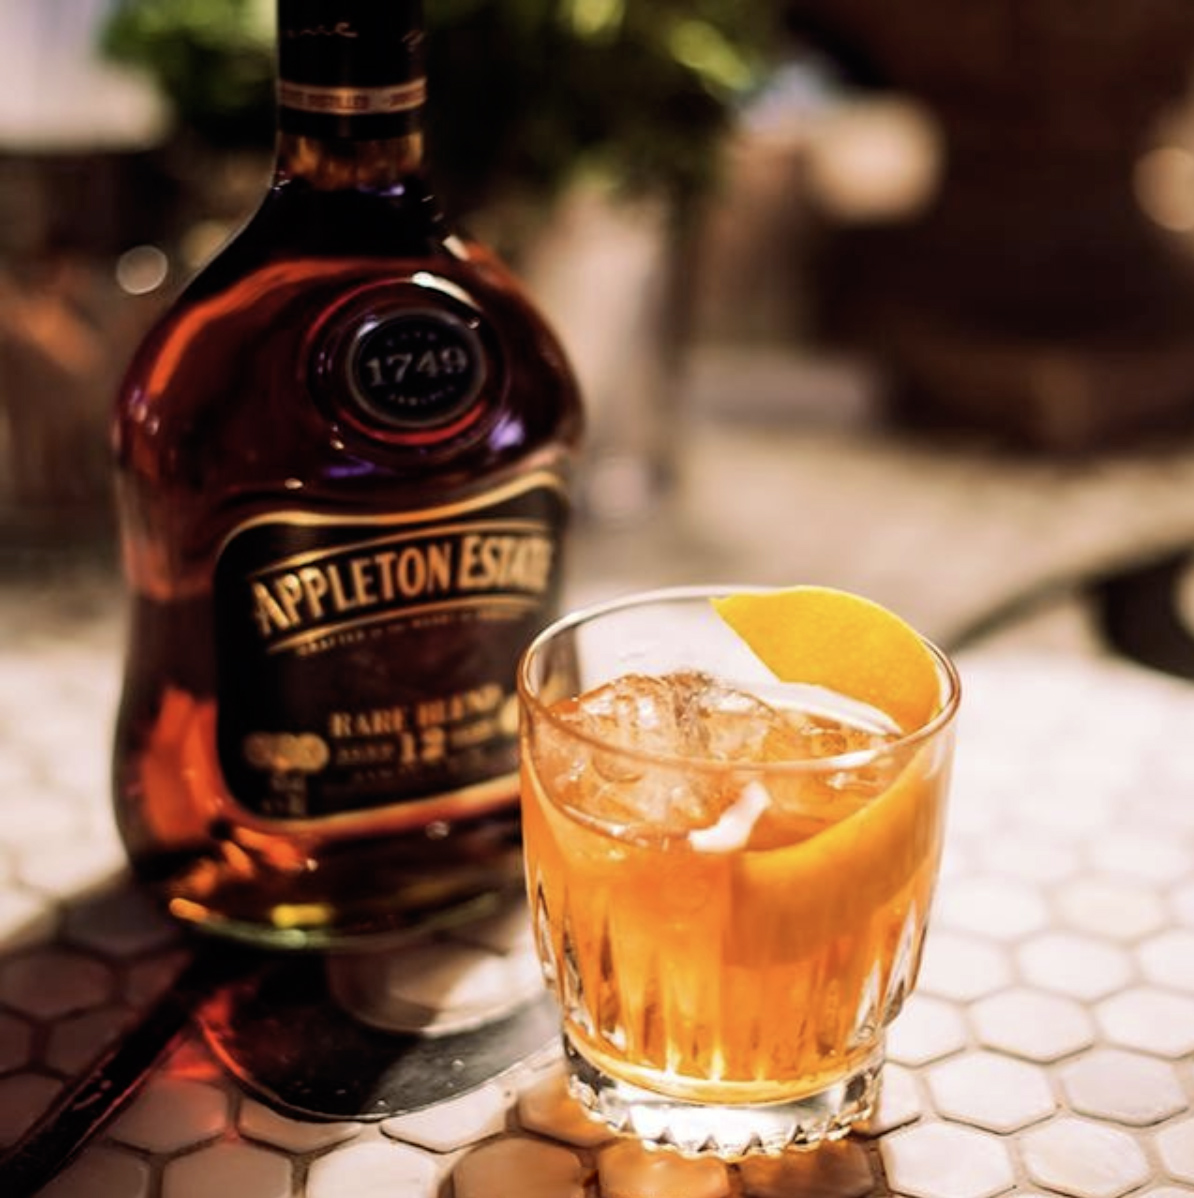 Appleton-estate-rare-blend Old Faashioned